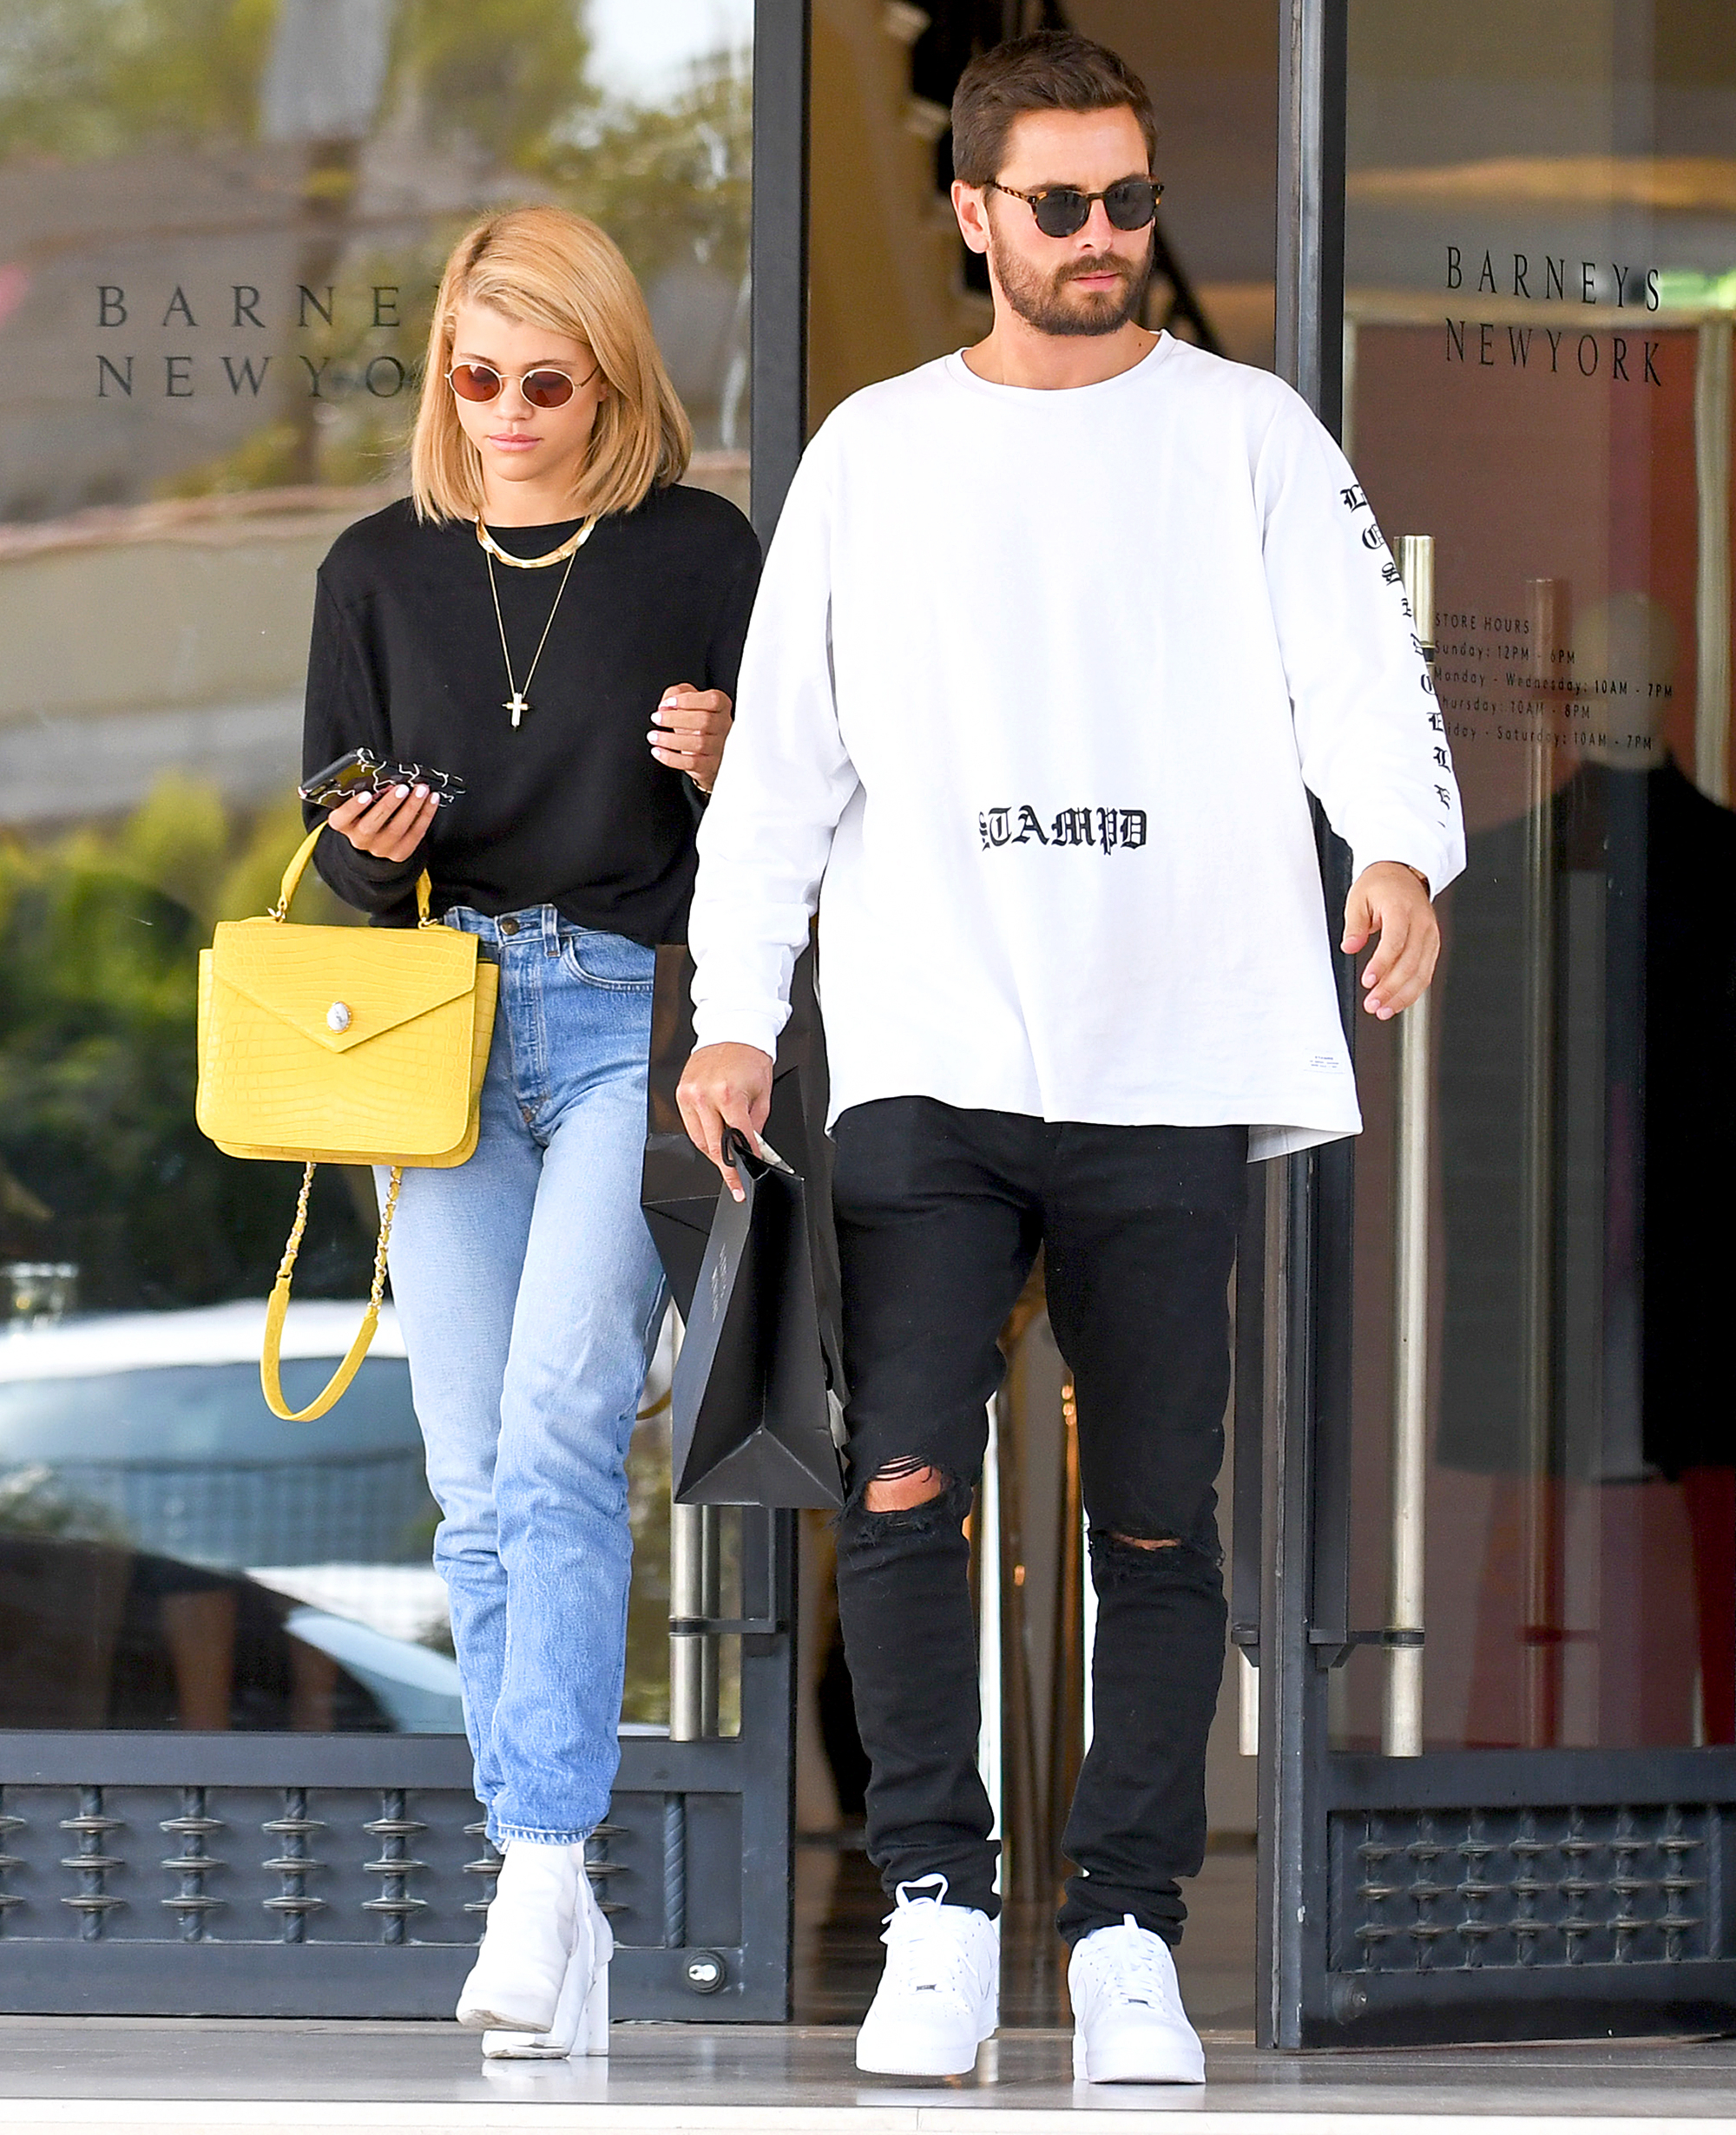 Sofia Richie and Scott Disick